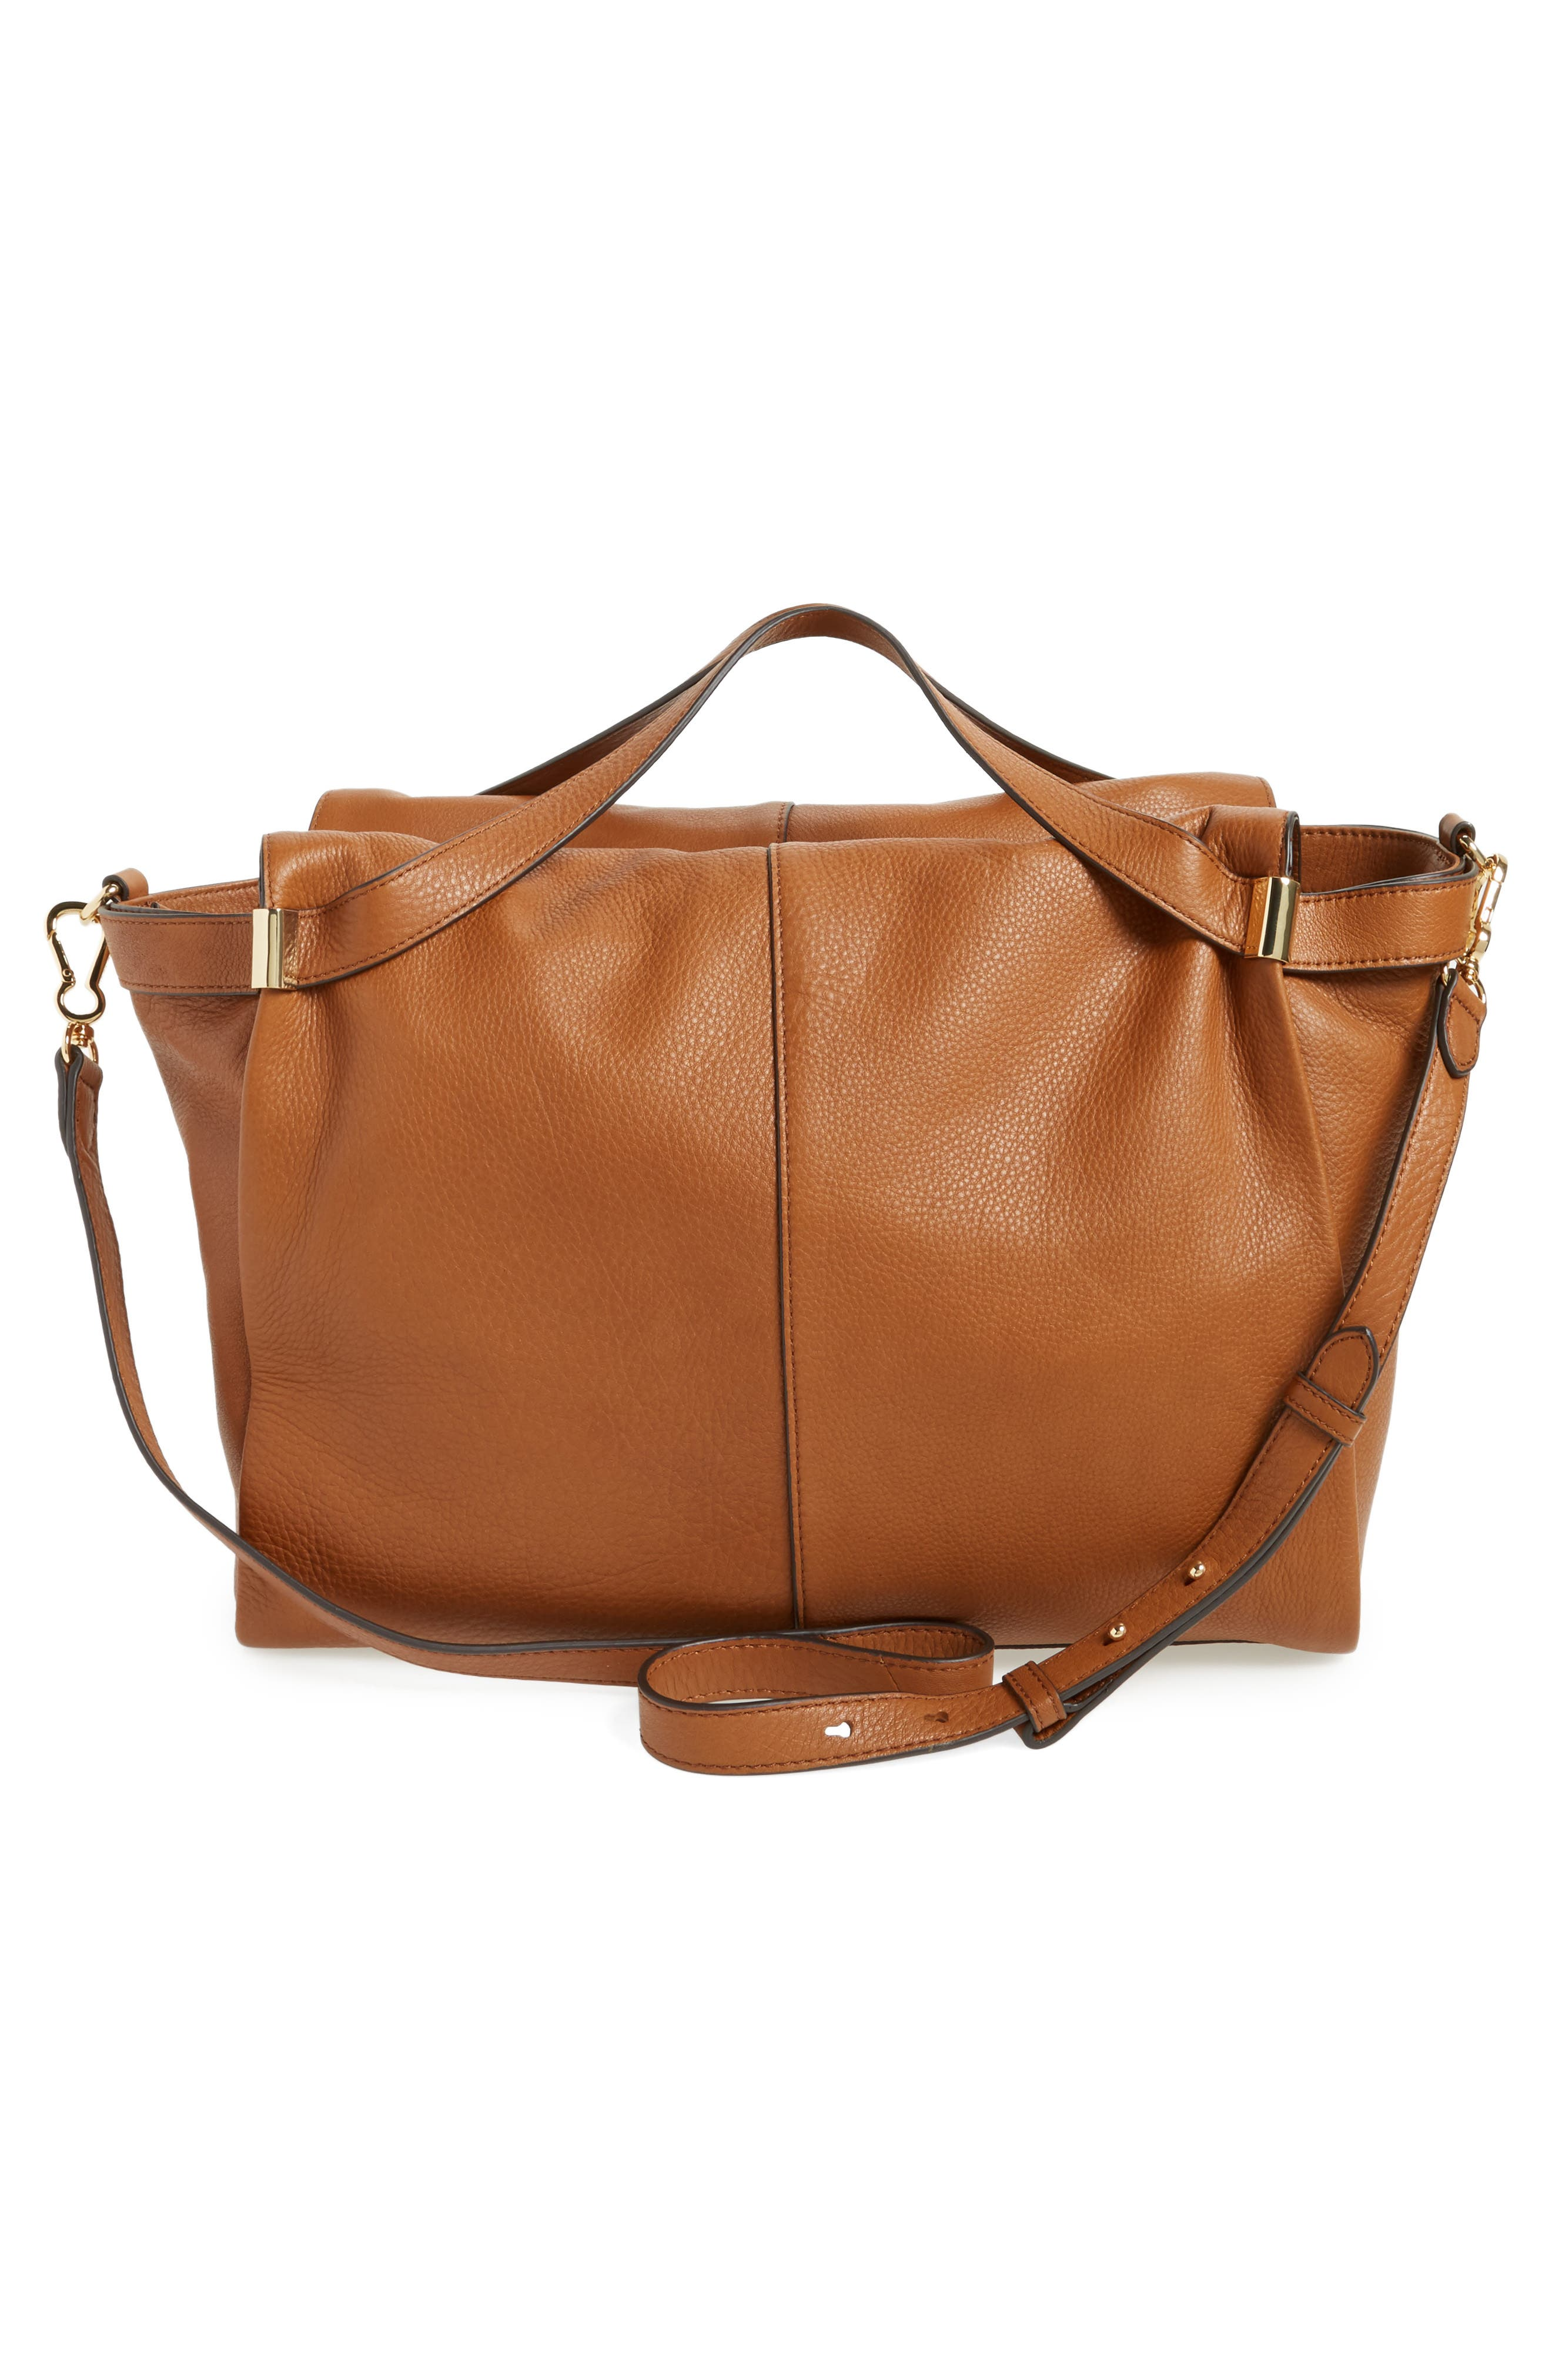 Rosen Leather Satchel,                             Alternate thumbnail 2, color,                             Dark Rum